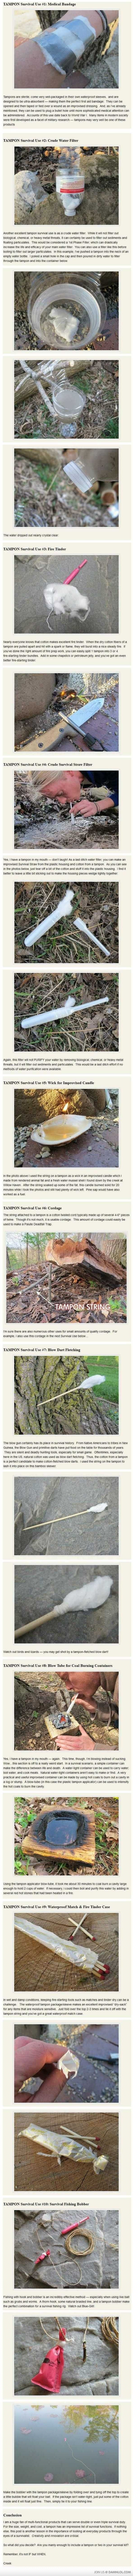 Survival uses for tampons-totally legit, I'm definitely making sure some come along for camping and hiking every trip